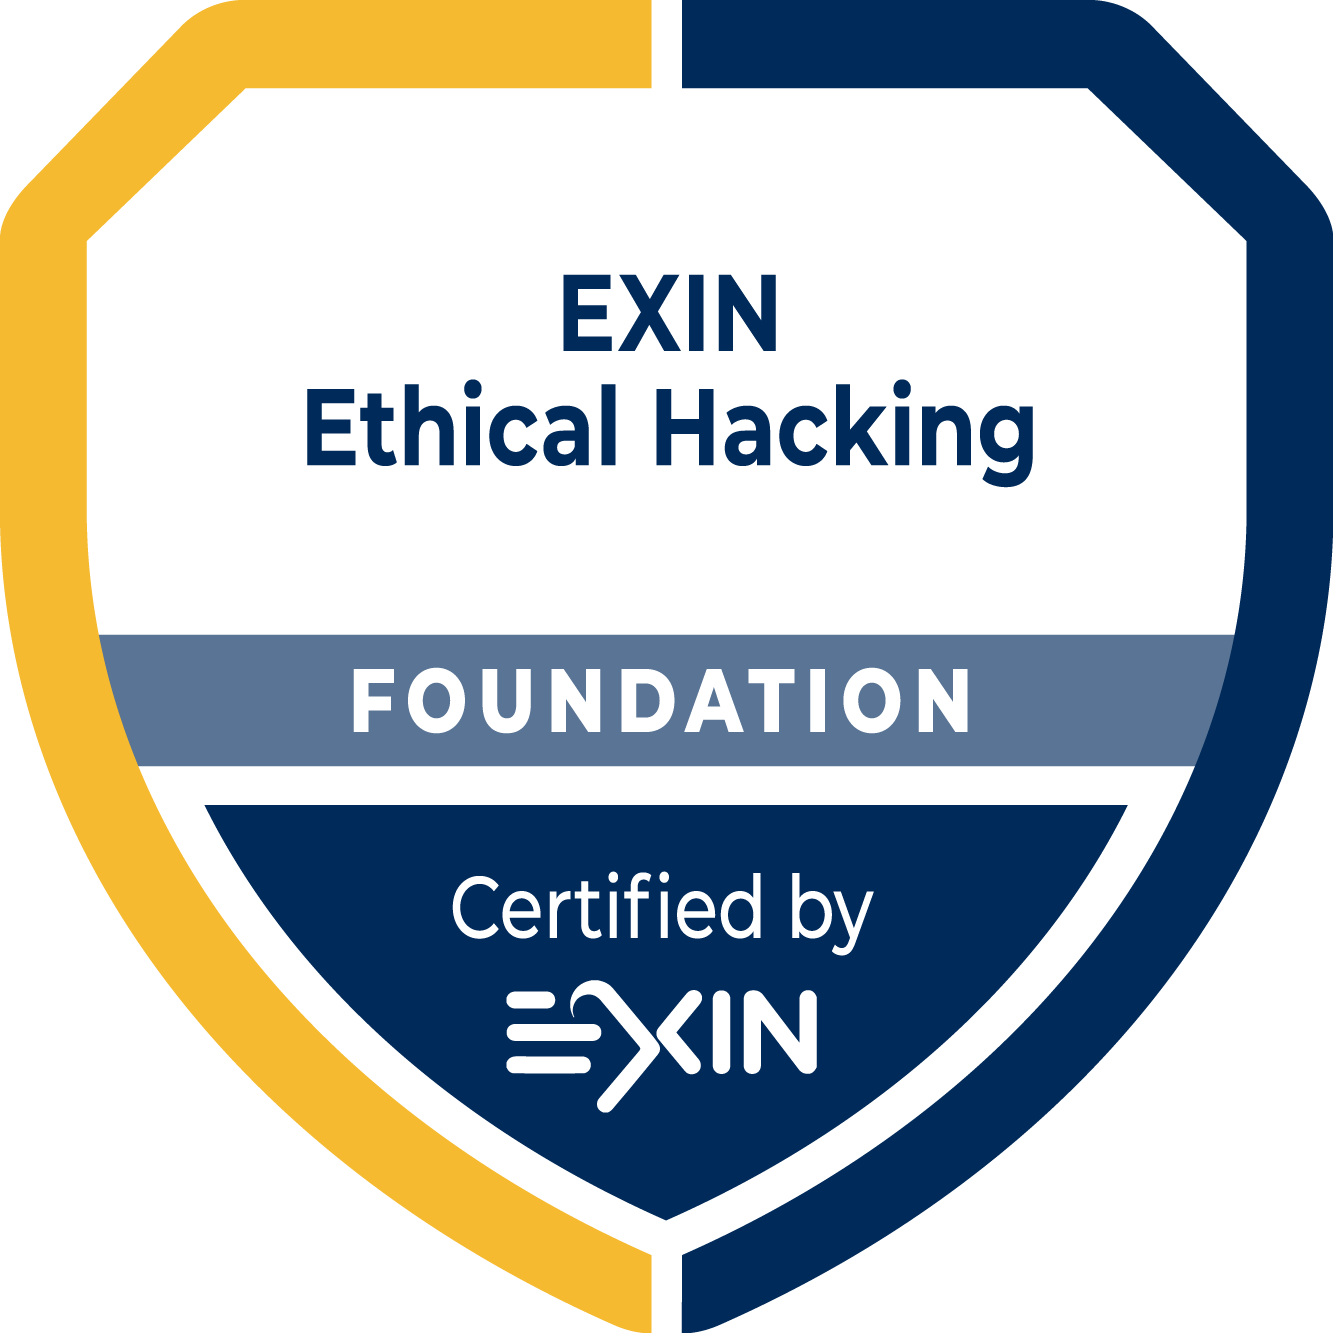 EXIN Ethical Hacking Foundation